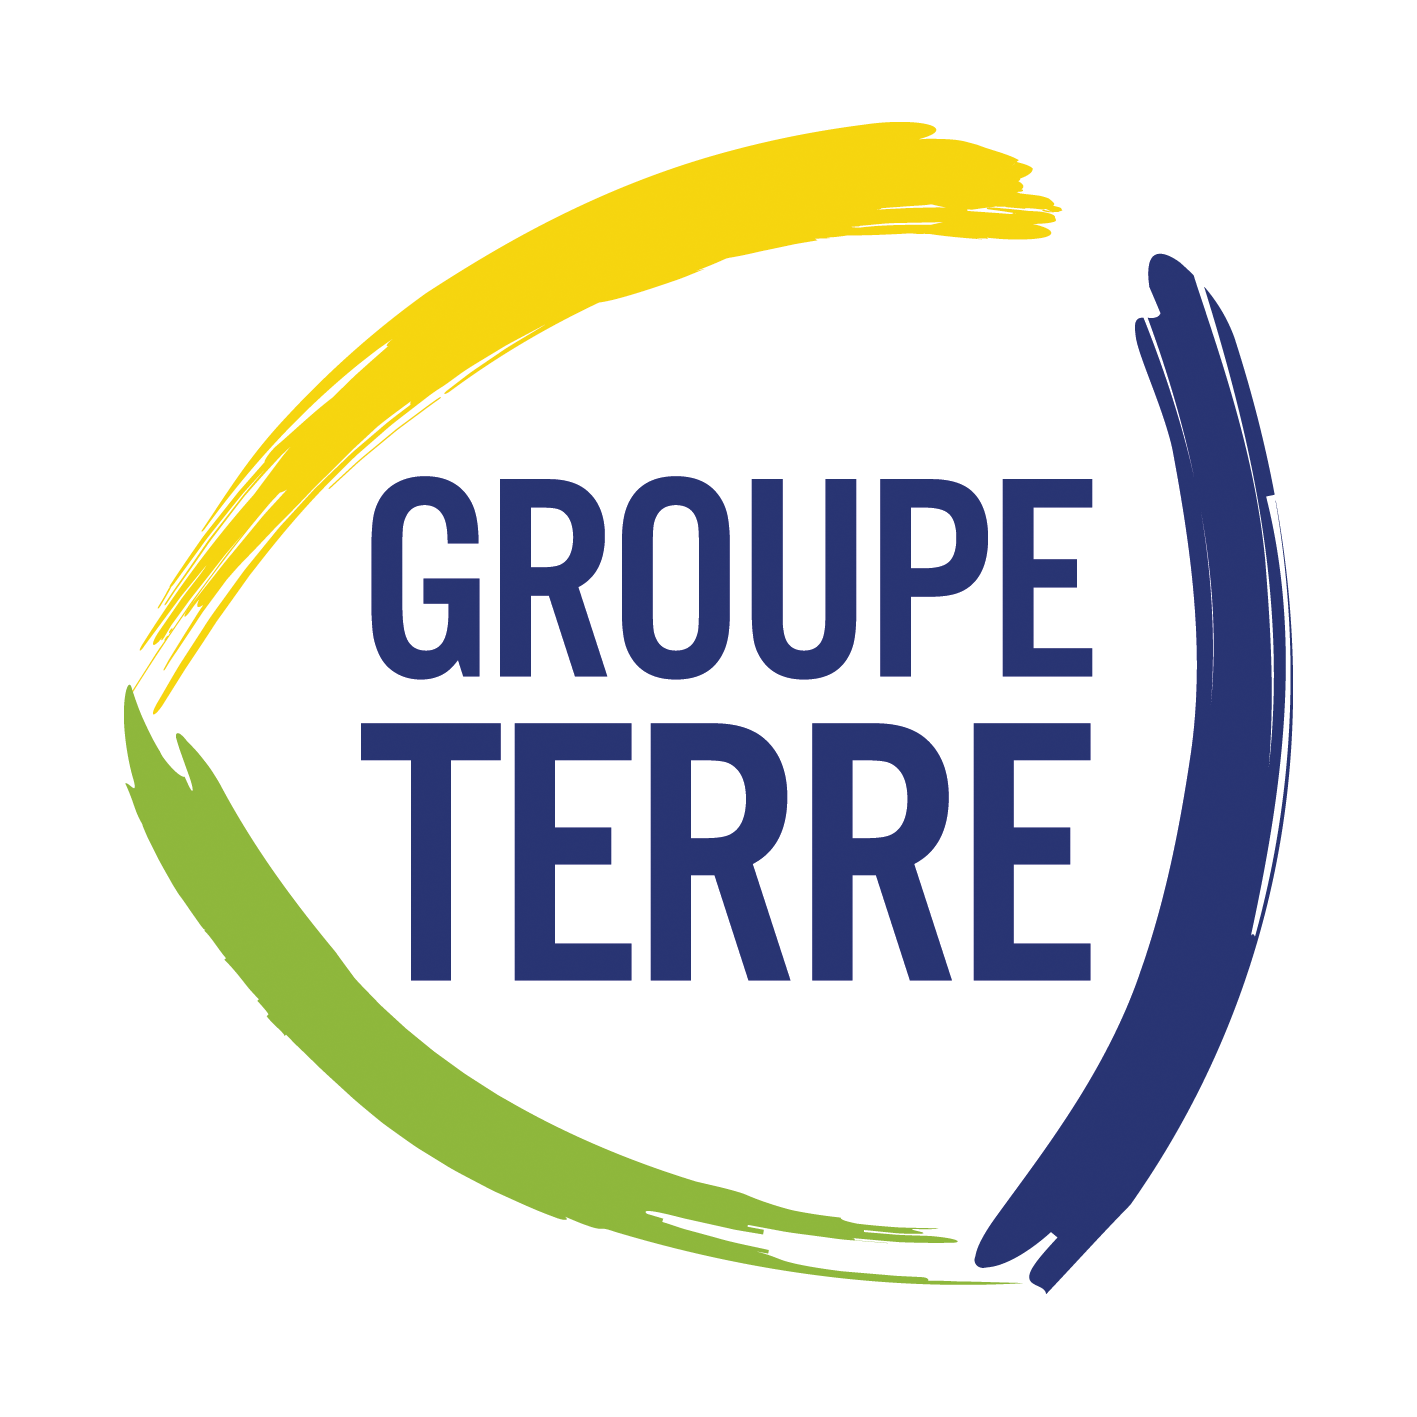 Groupe terre asbl